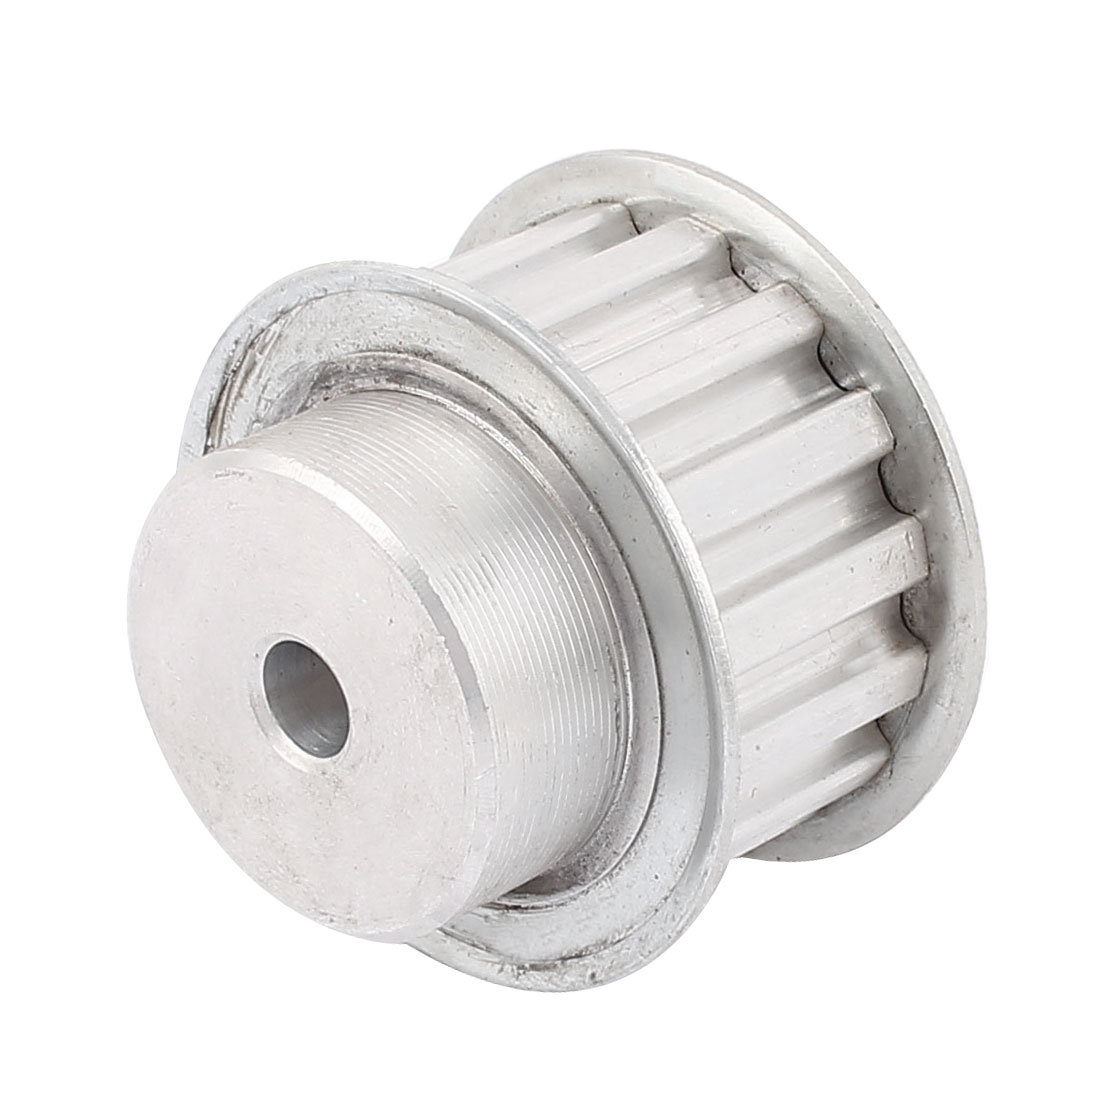 L15 15 Teeth 9.525mm Pitch 8mm Bore Aluminum Stepper Motor Drive Synchronous Timing Pulley for 21mm Belt Width